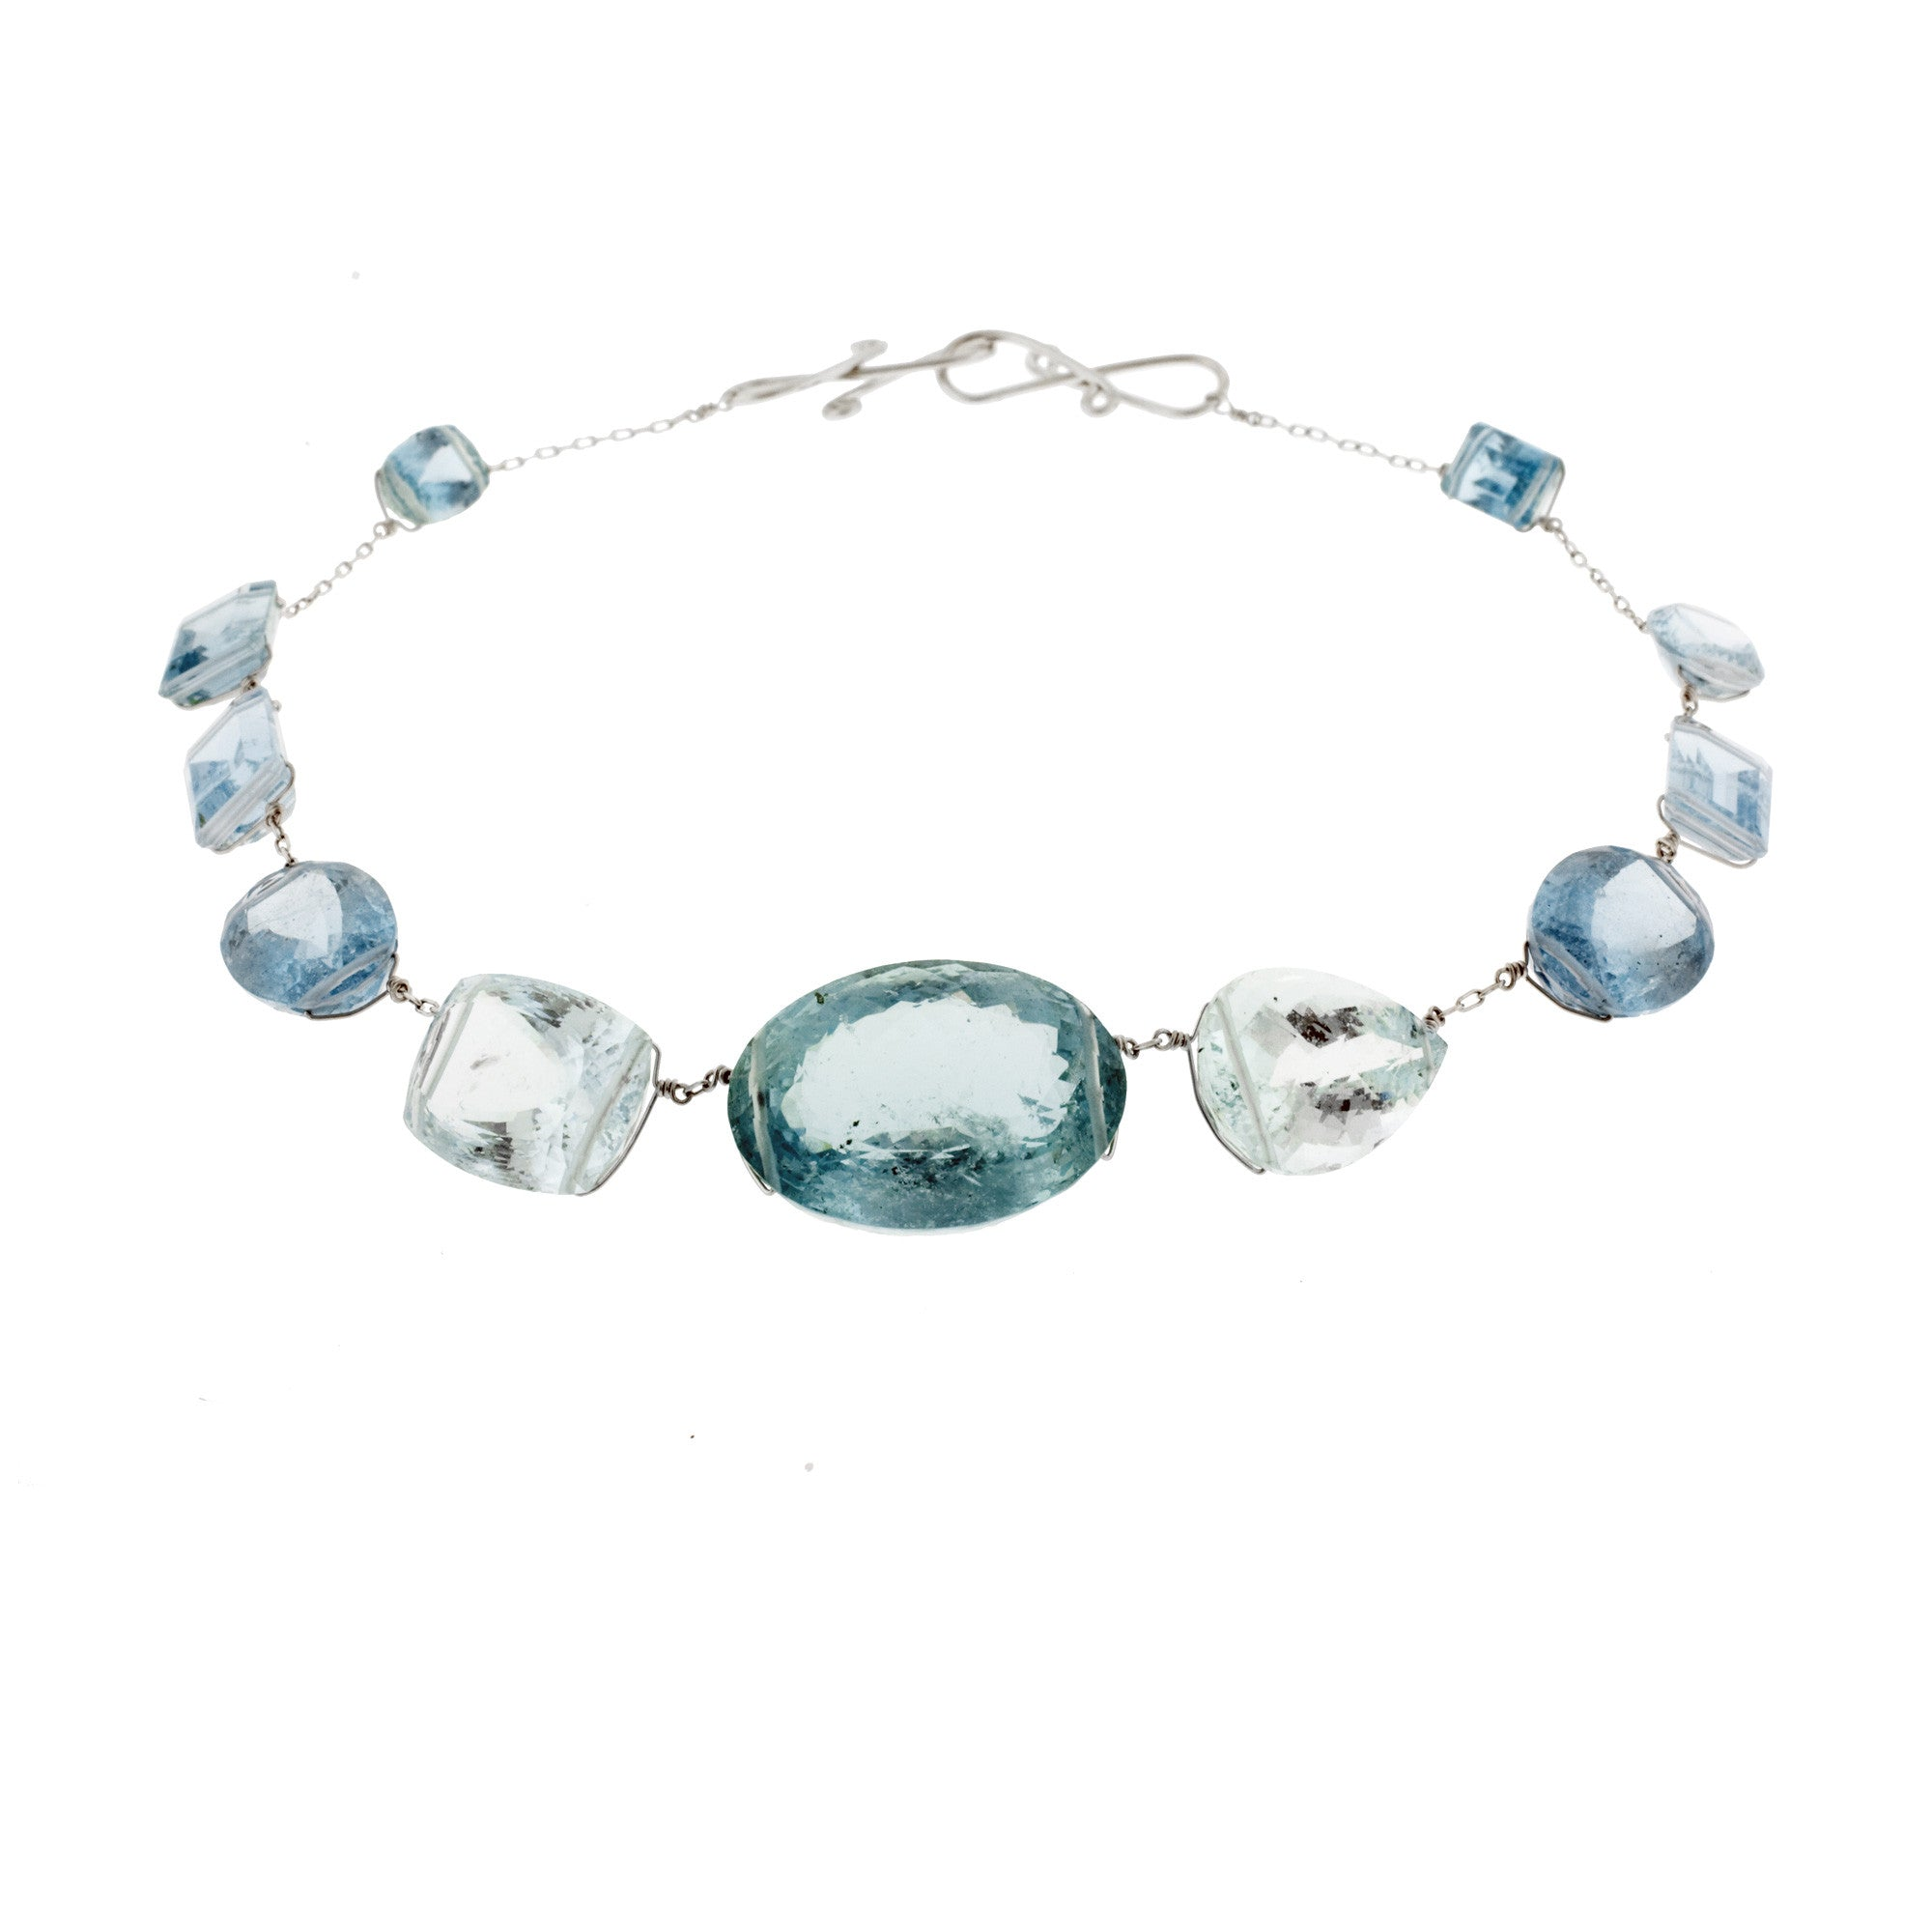 GRACE XI aquamarine necklace